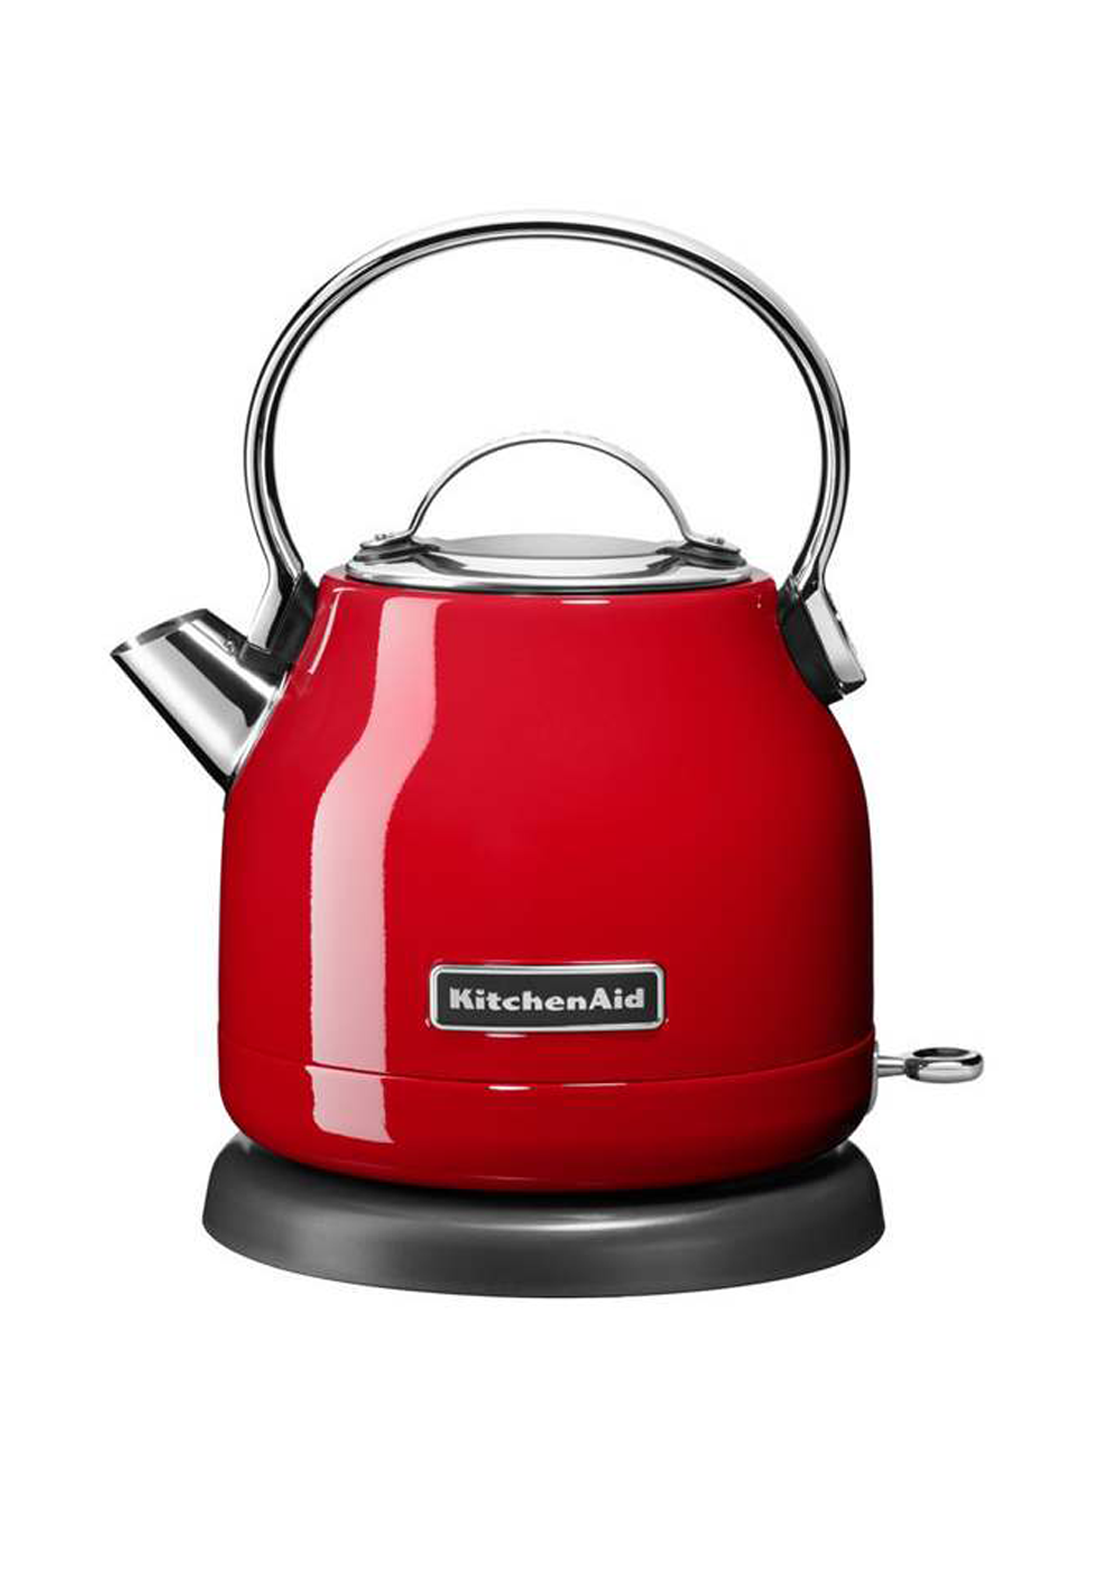 KitchenAid 1.25L Electric Kettle, Berry Red